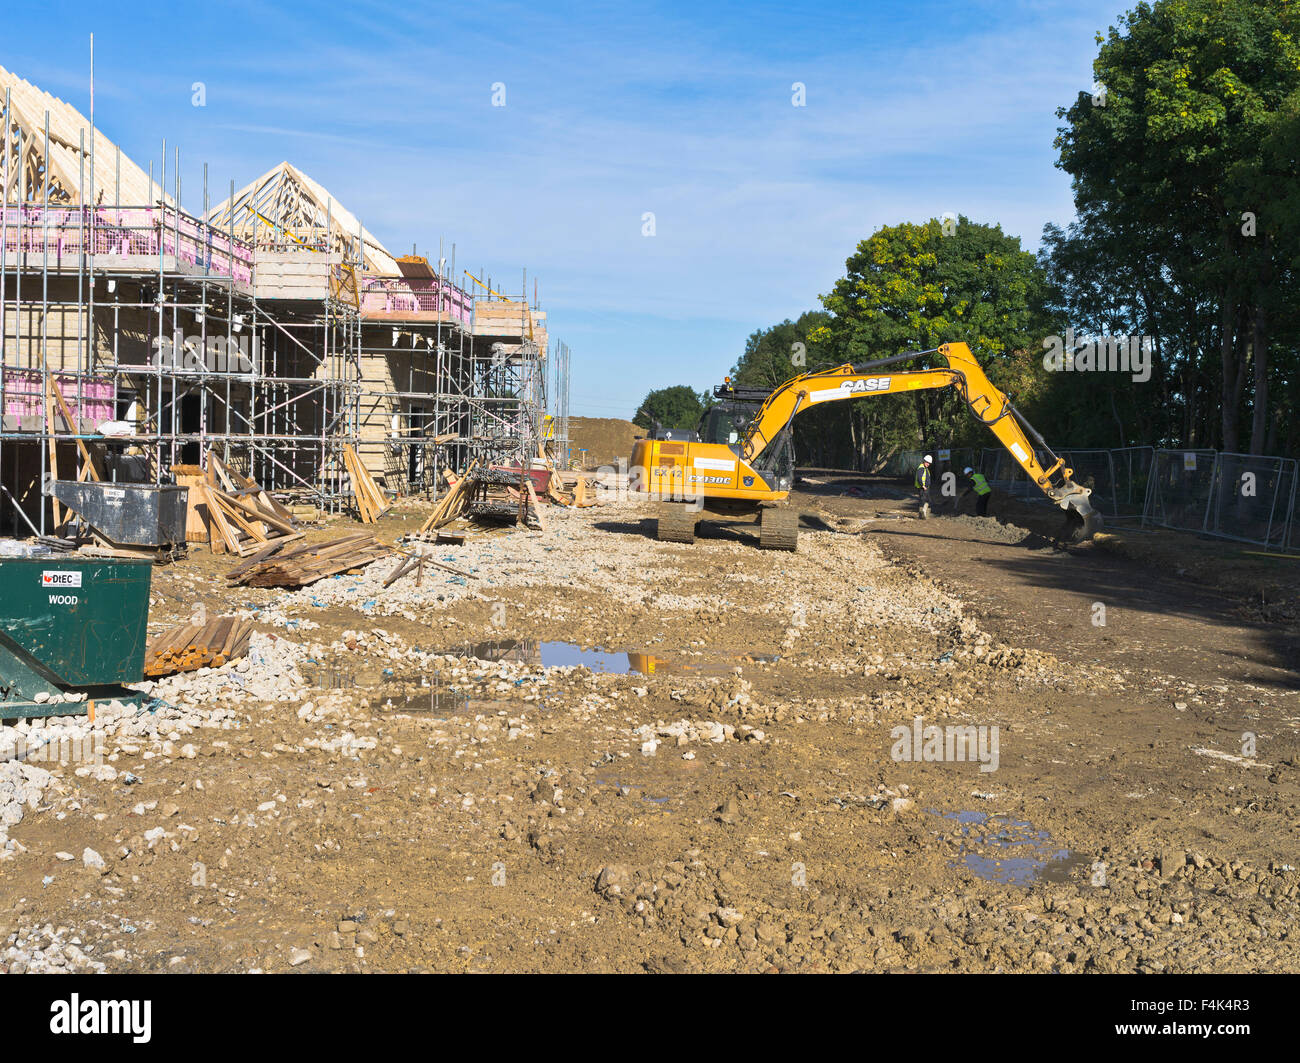 Dh redrow homes uk new houses uk construction site for Home building sites